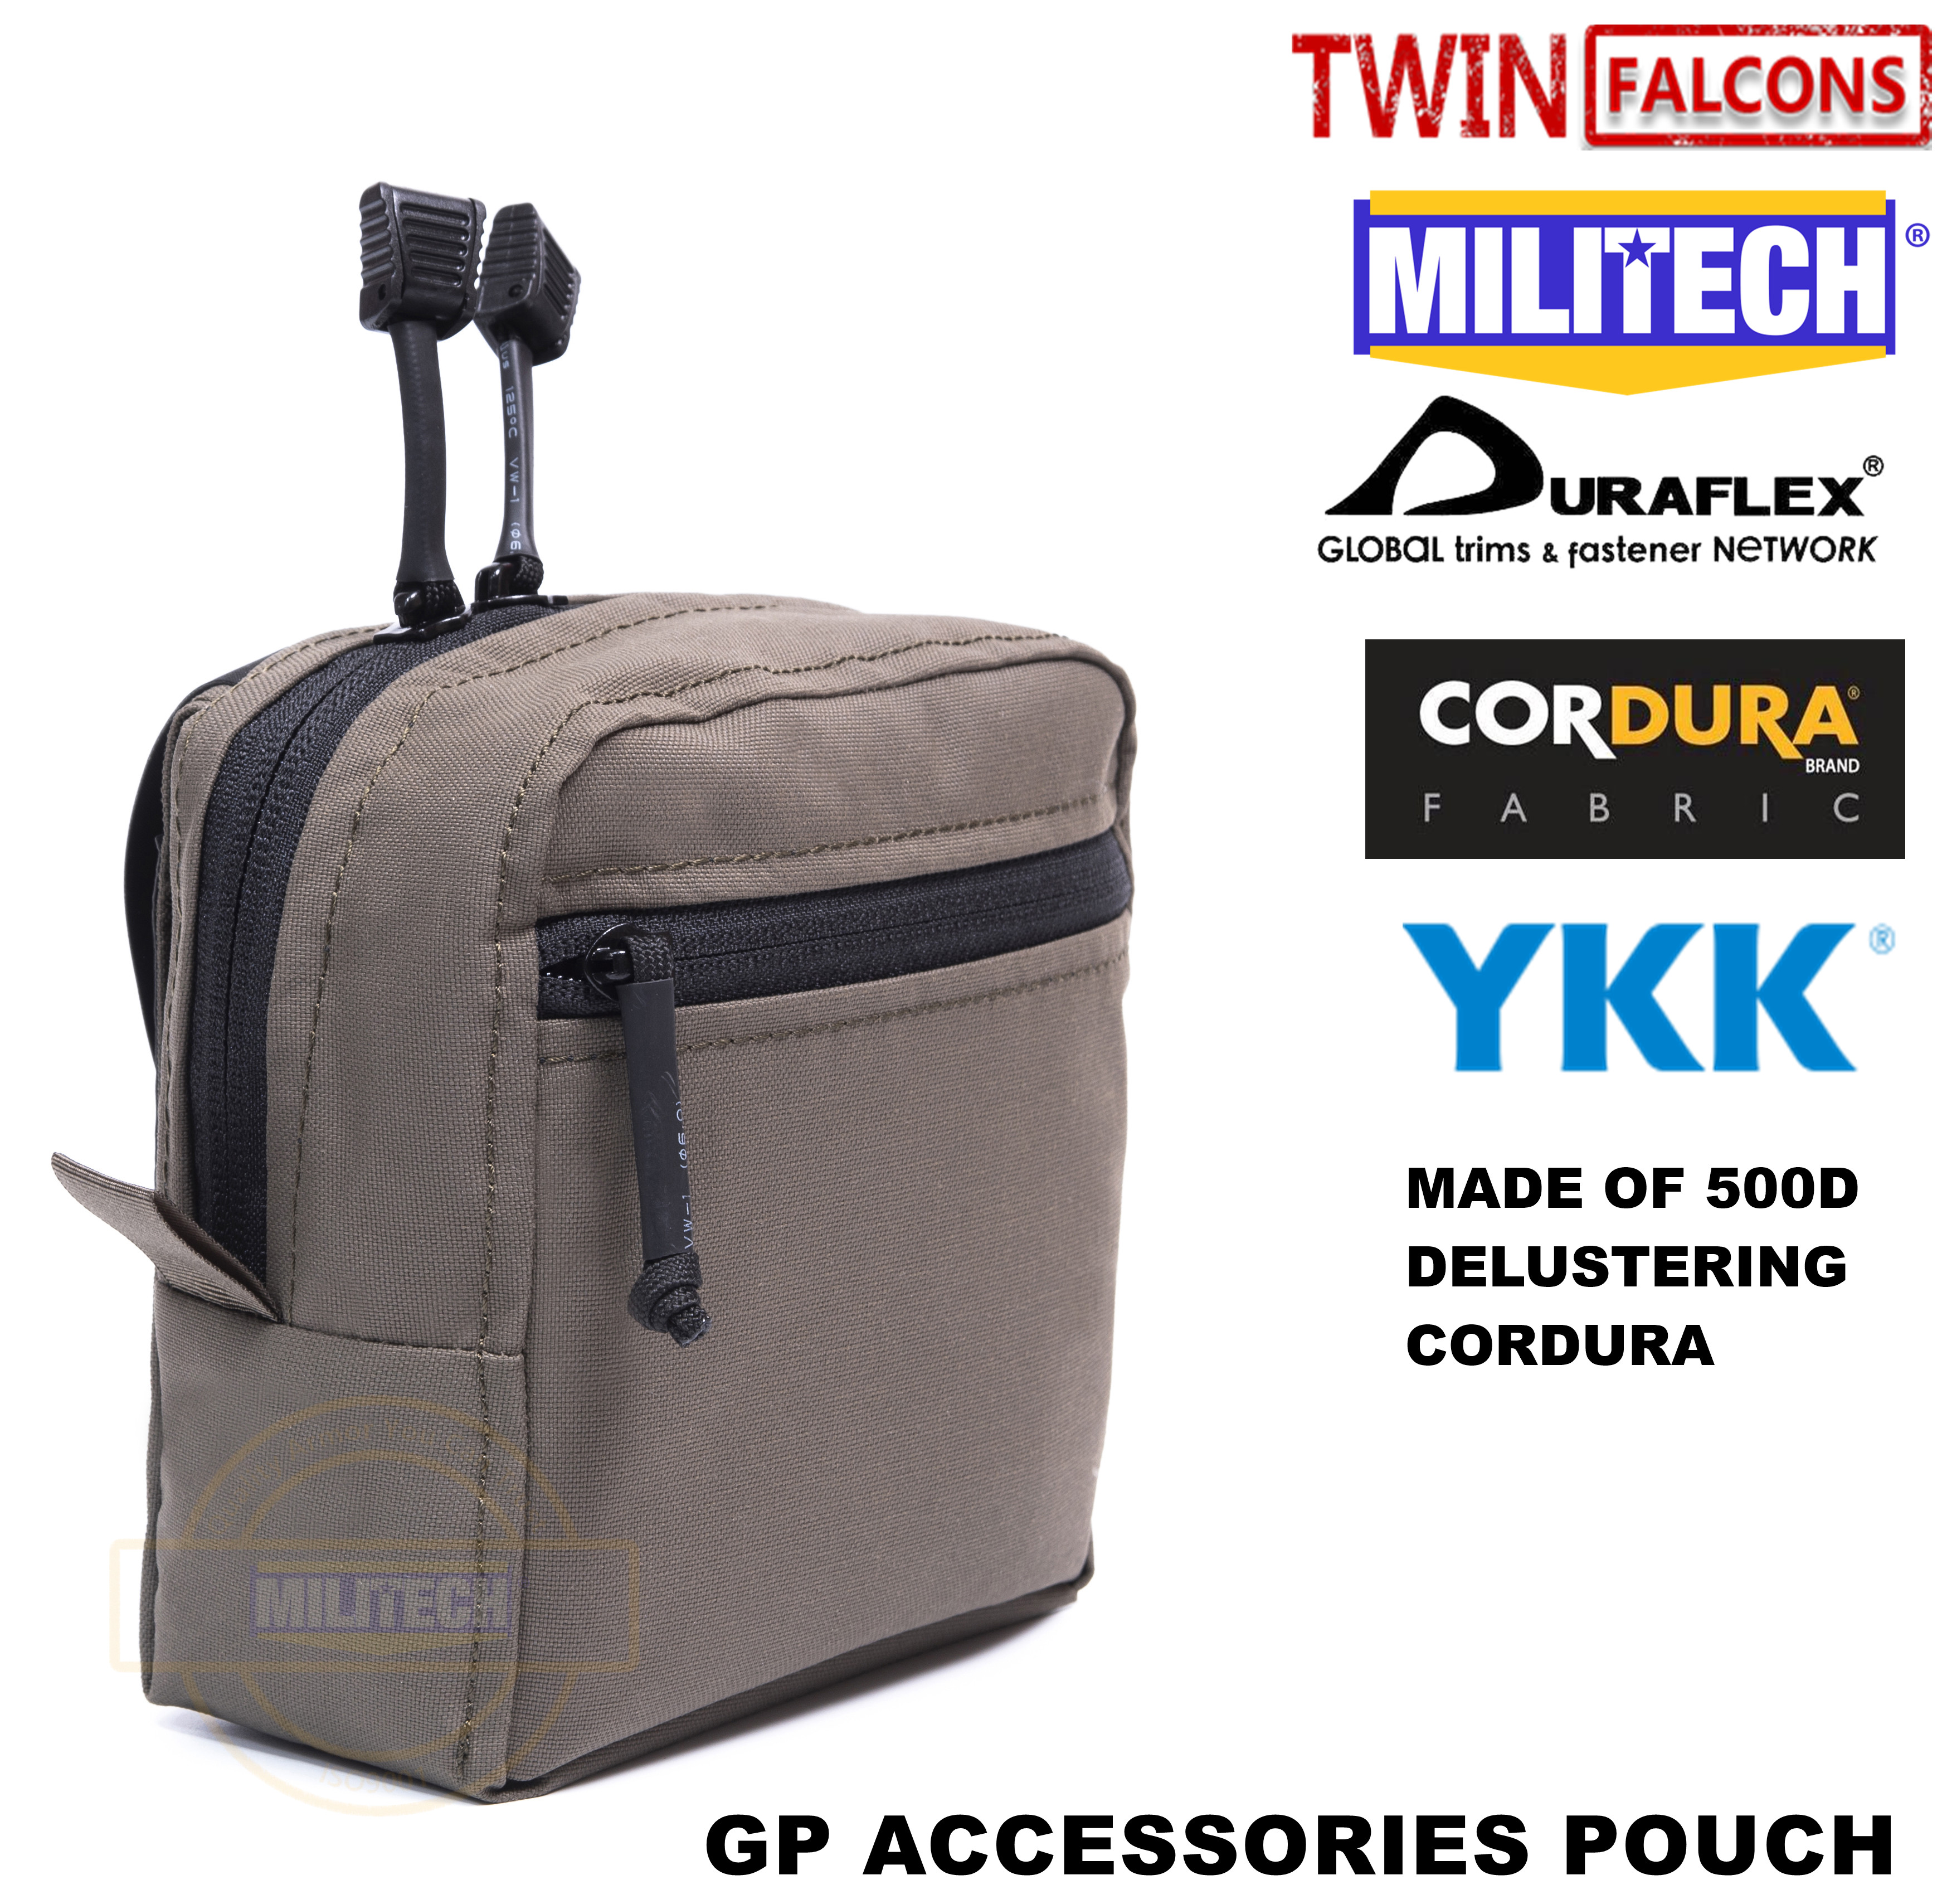 MILITECH TWINFALCONS TW Delustered Cordura Crye CP Smart GP Pouch For AVS CPC JPC Molle Accessories Pouch With SSE Bag